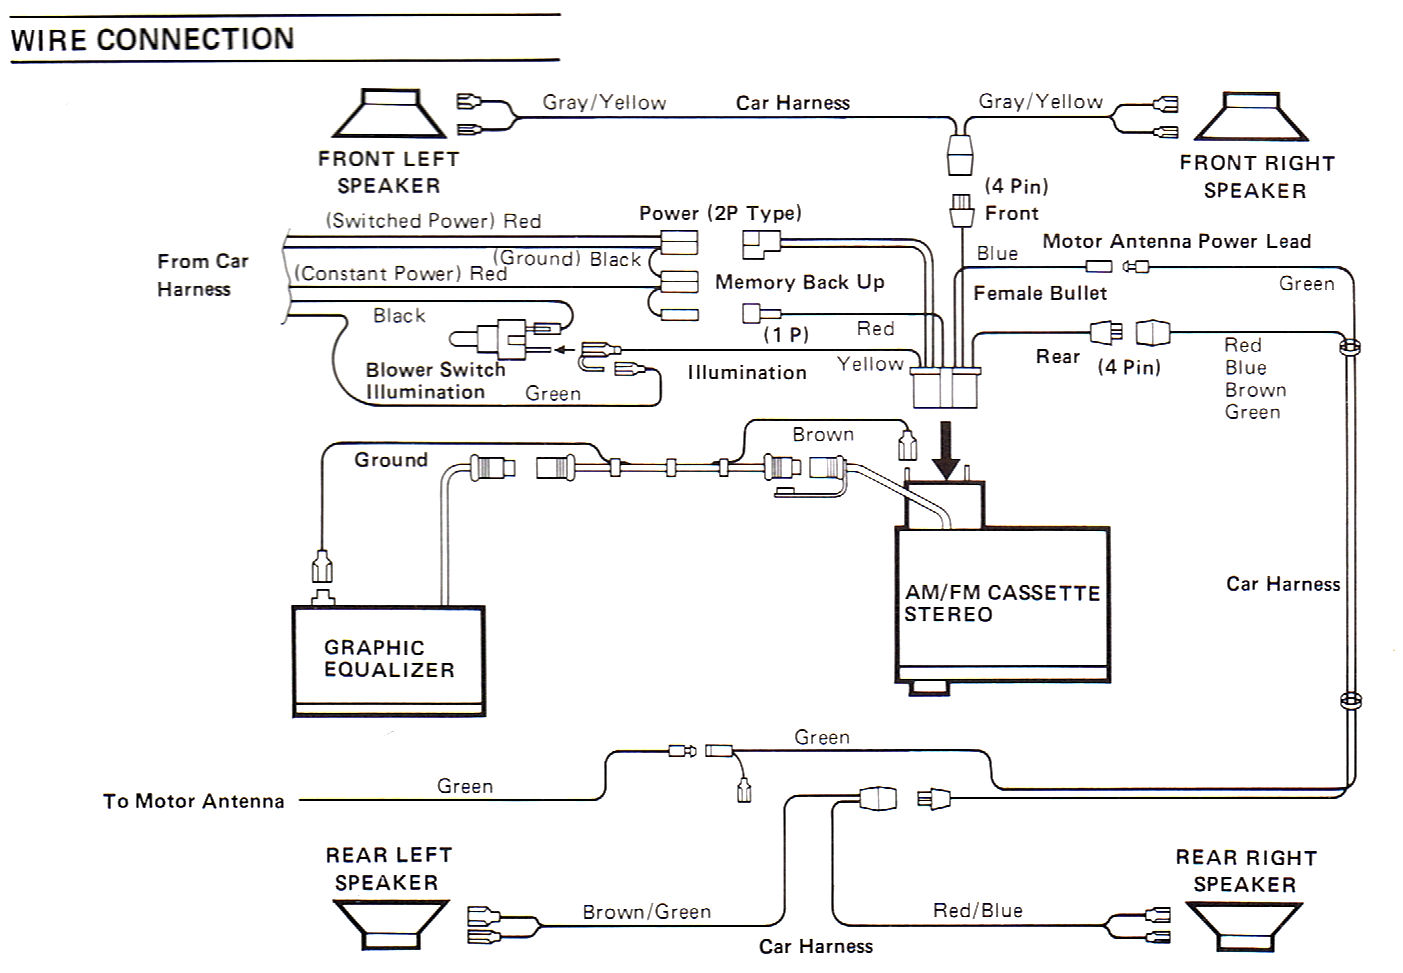 Clarion Eq Wiring Diagram - Wiring Diagram Database • on clarion cd player wiring-diagram, ford radio harness diagram, clarion radio wiring diagram, clarion radio wired remote diagrams, dual stereo wiring harness diagram, starcraft wiring harness diagram, mercedes radio harness diagram, gm radio wiring harness diagram, clarion vrx485vd wiring-diagram,